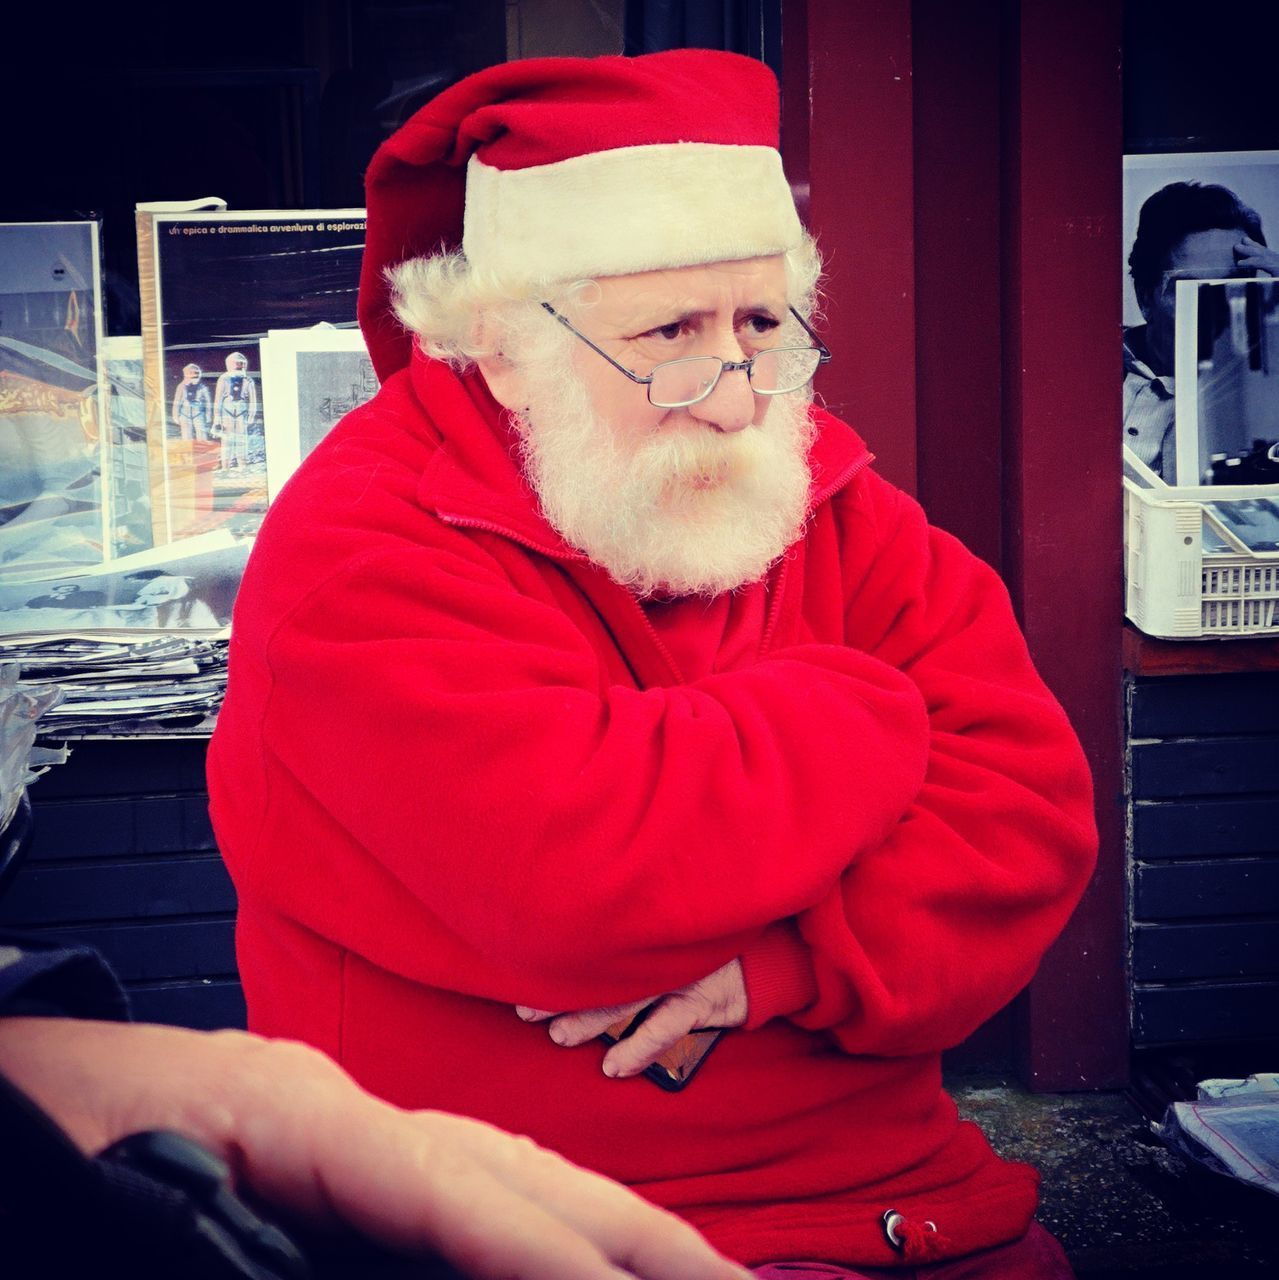 males, men, one person, real people, adult, glasses, lifestyles, red, clothing, beard, eyeglasses, facial hair, hat, waist up, santa claus, sitting, front view, leisure activity, warm clothing, mature men